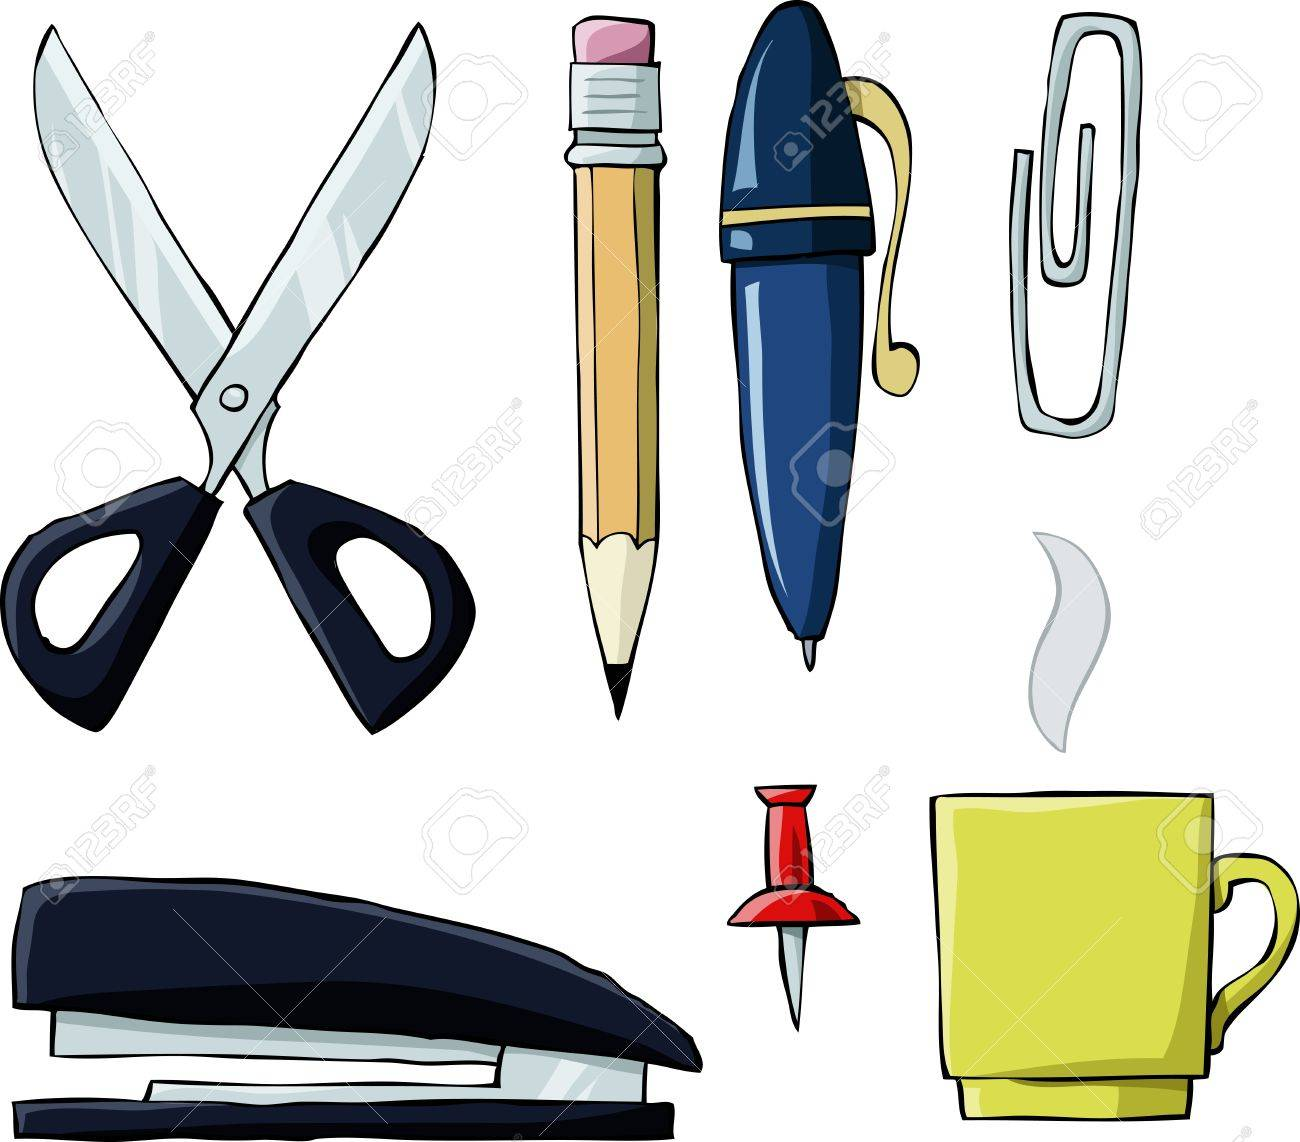 Office Tools On White Background, Vector Illustration Royalty Free ...